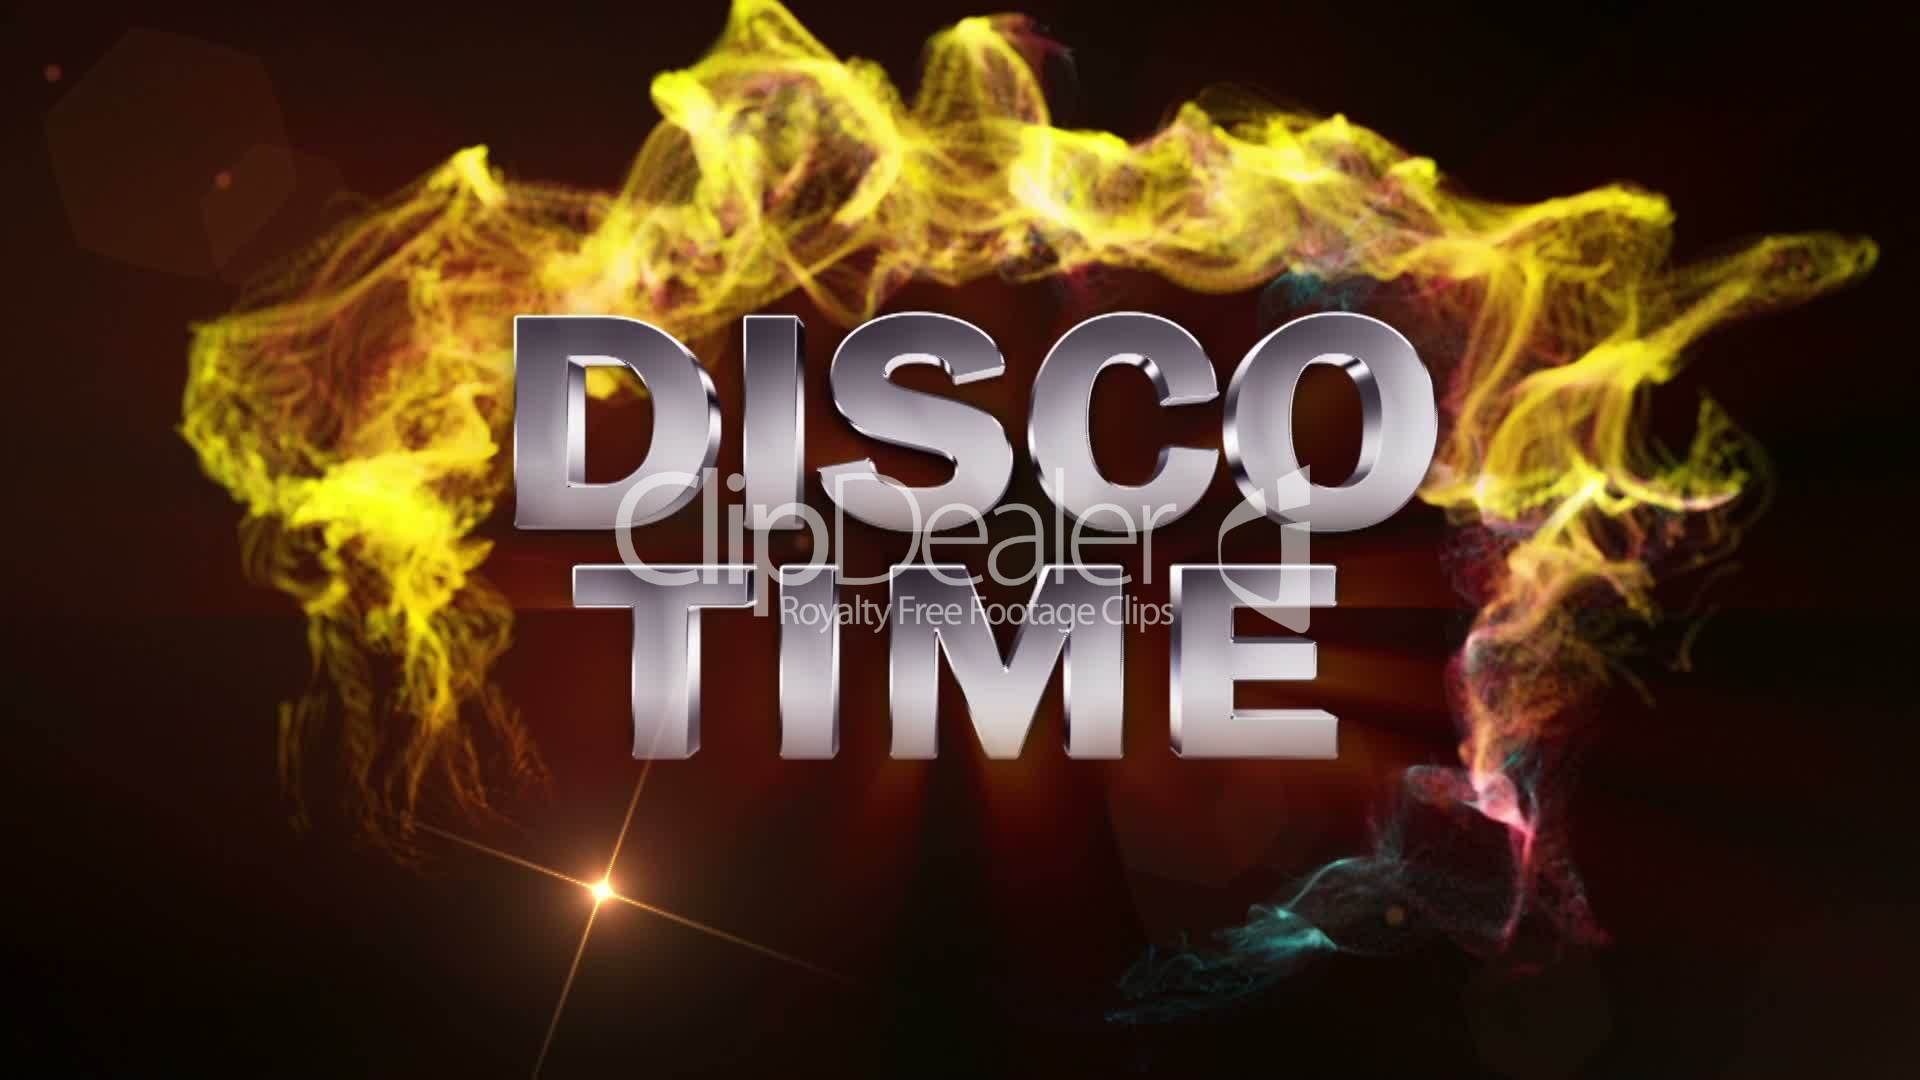 disco time text in particle double version red hd1080 royalty free video and stock footage. Black Bedroom Furniture Sets. Home Design Ideas